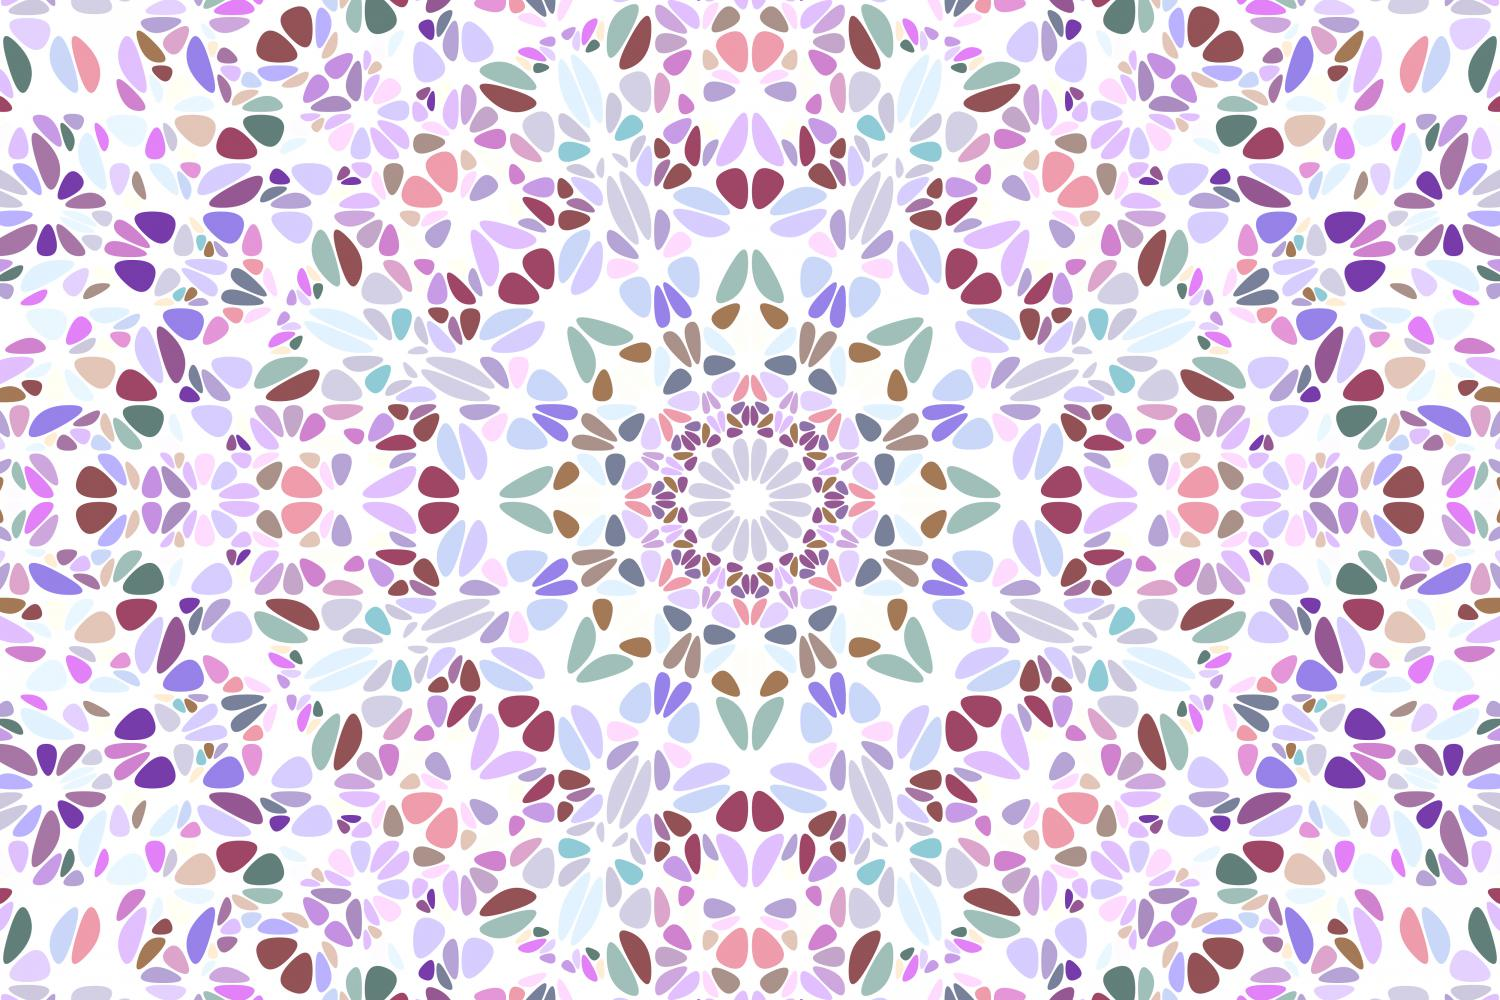 48 Floral Mandala Backgrounds example image 21